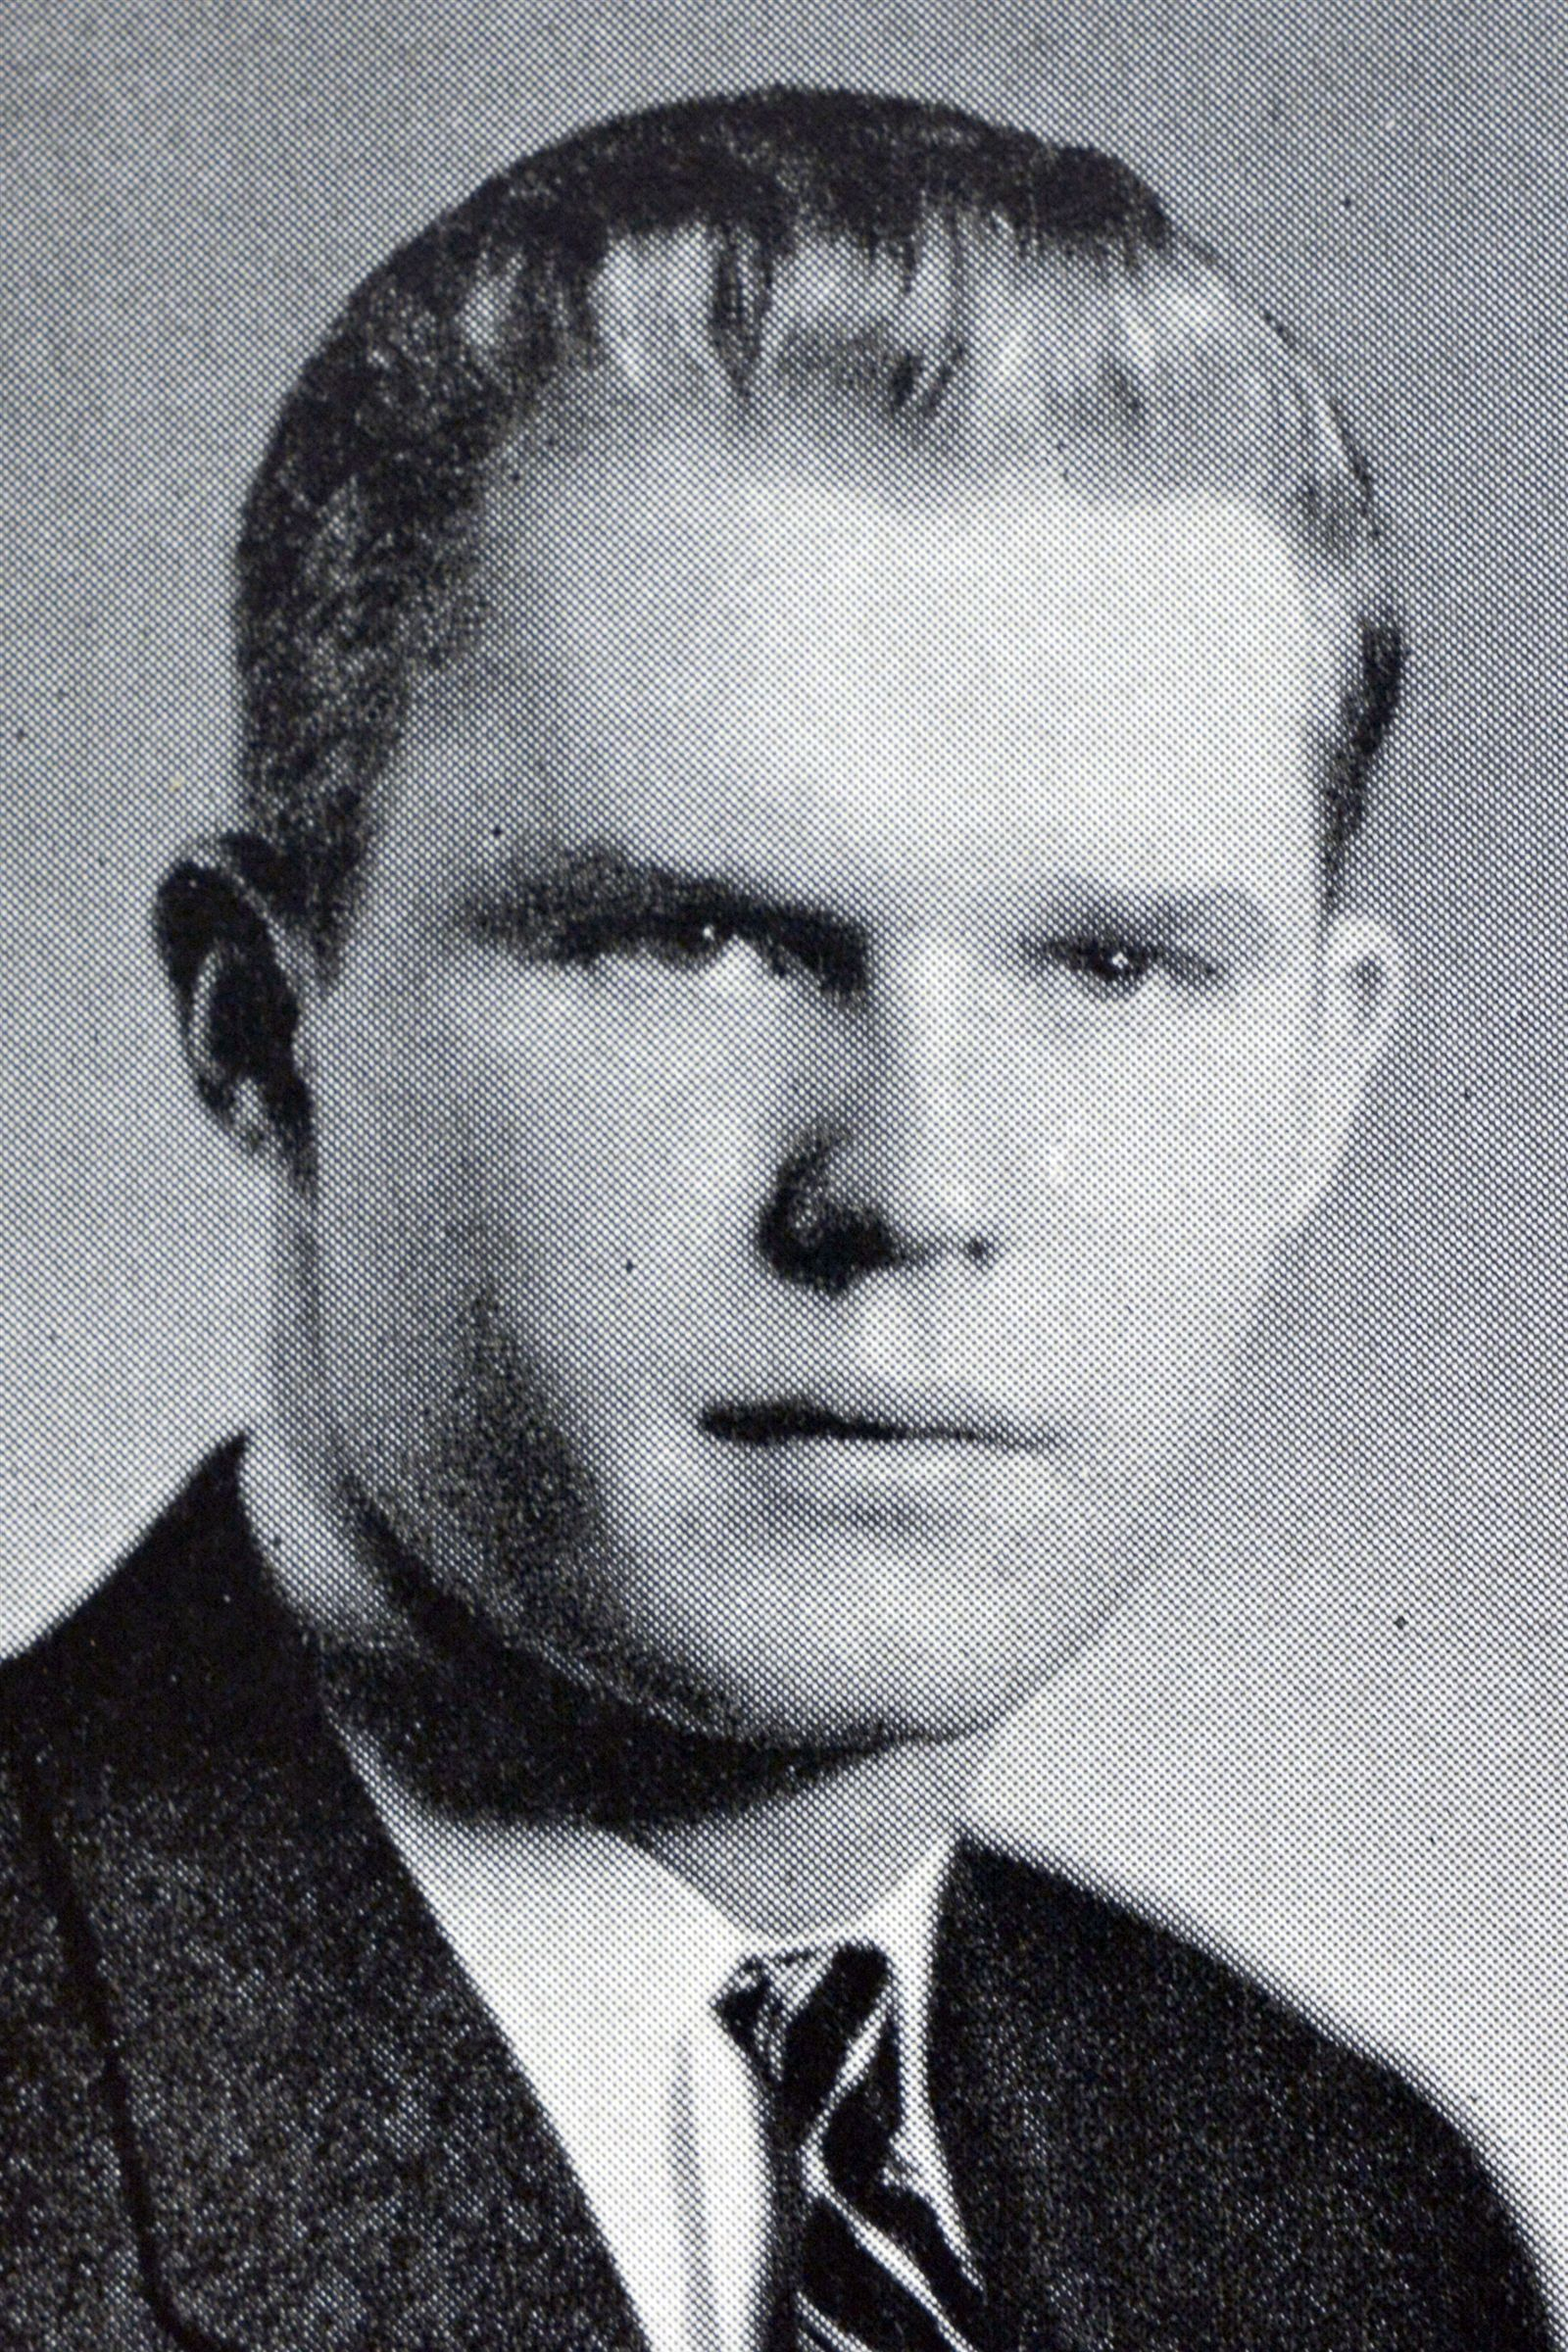 Terrence J. Carney '54